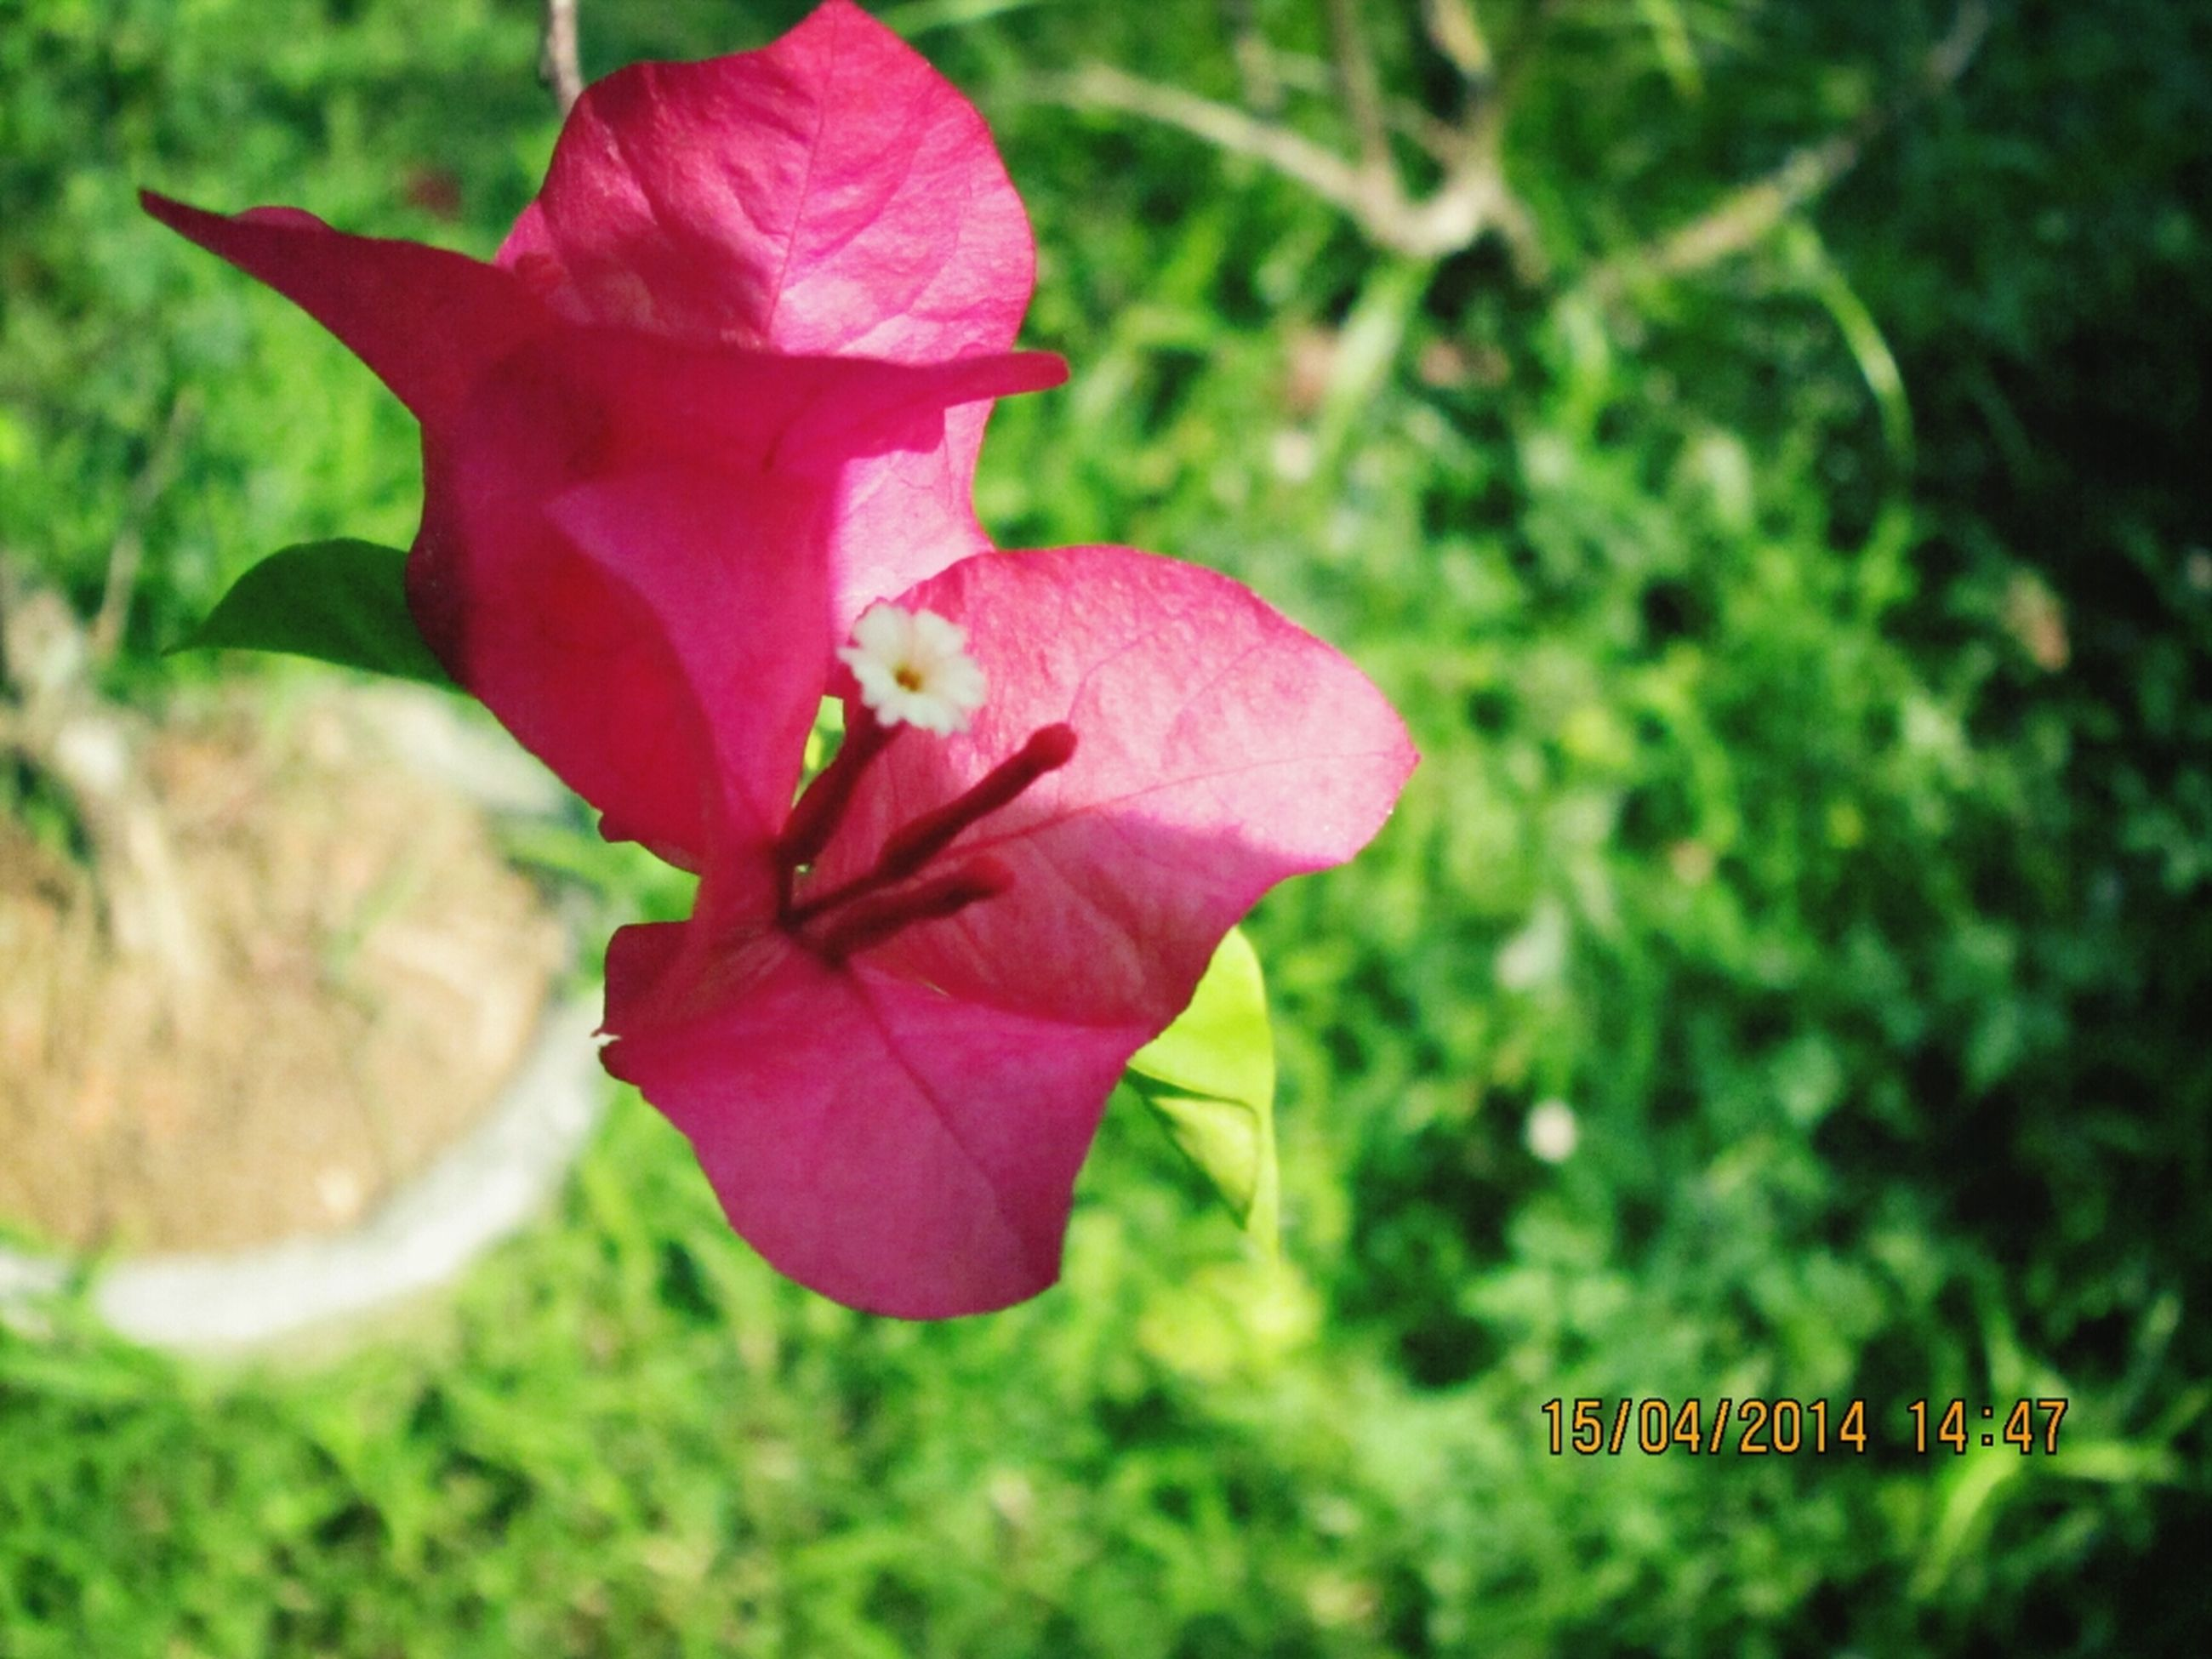 flower, growth, beauty in nature, freshness, focus on foreground, petal, fragility, close-up, nature, pink color, plant, blooming, flower head, day, park - man made space, outdoors, leaf, selective focus, no people, in bloom